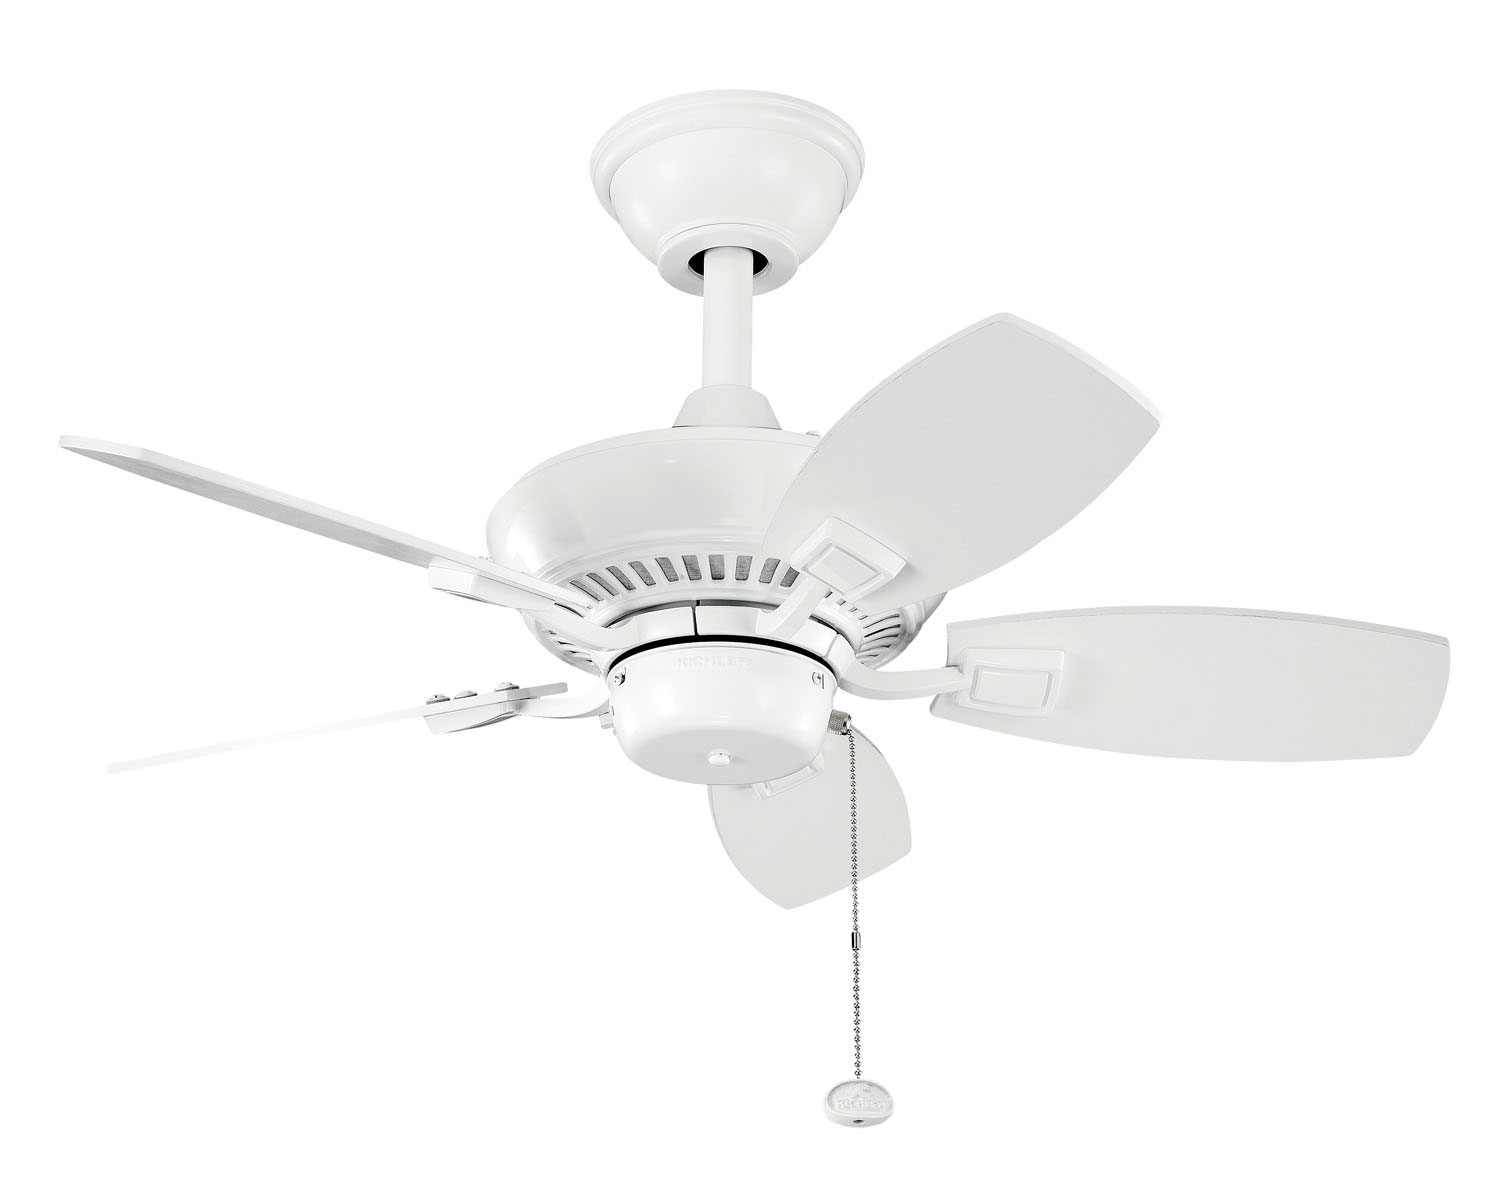 30 inchCeiling Fan from the Canfield collection by Kichler 300103WH